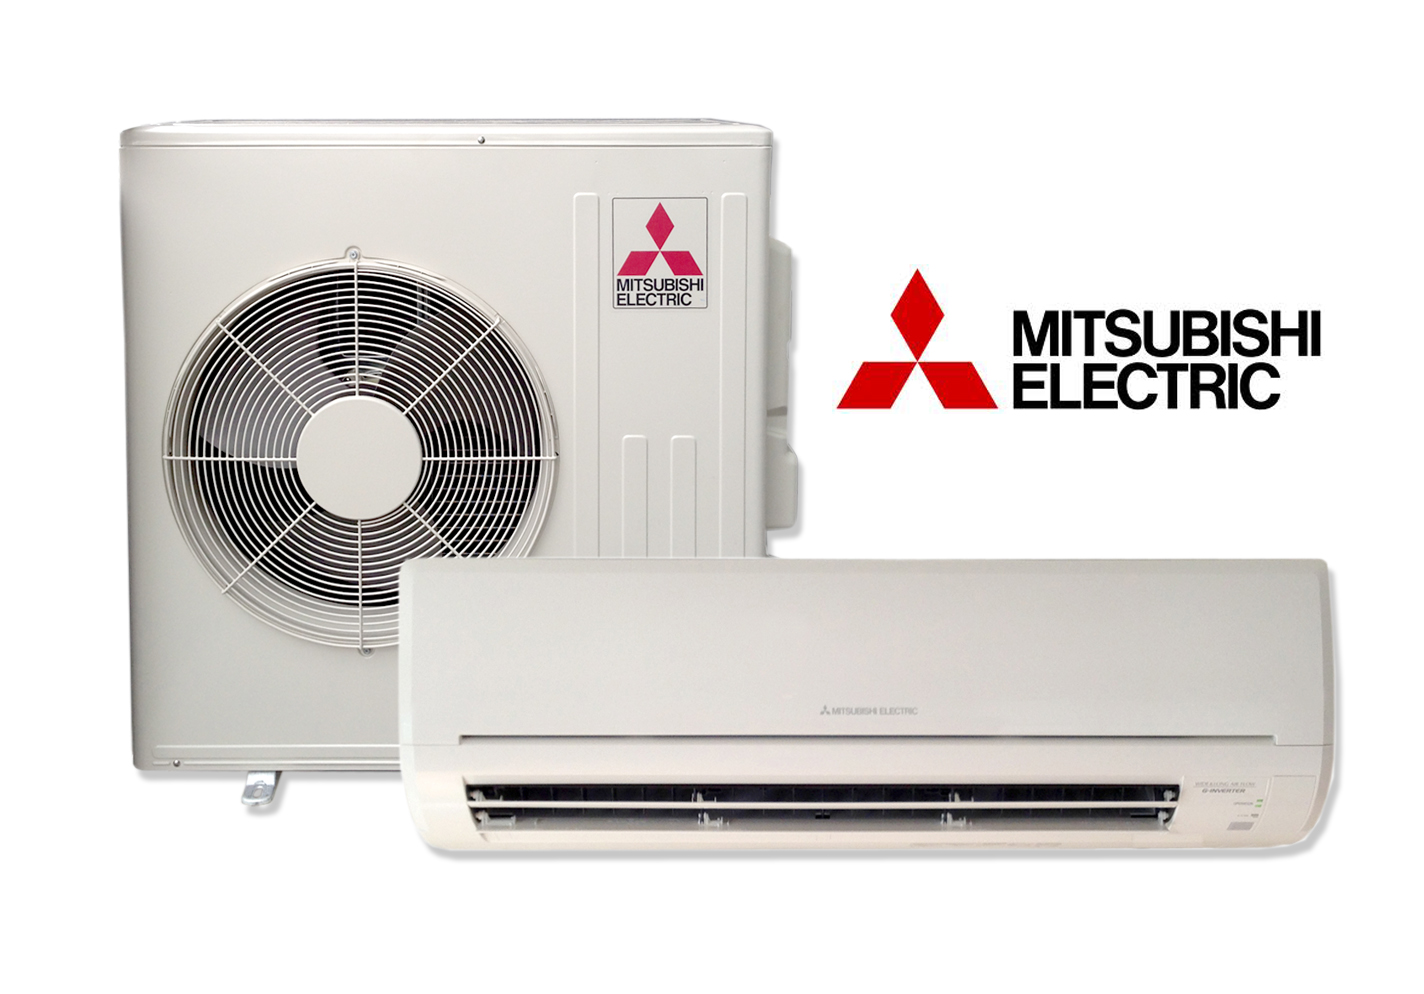 mitsubishi-electric-units